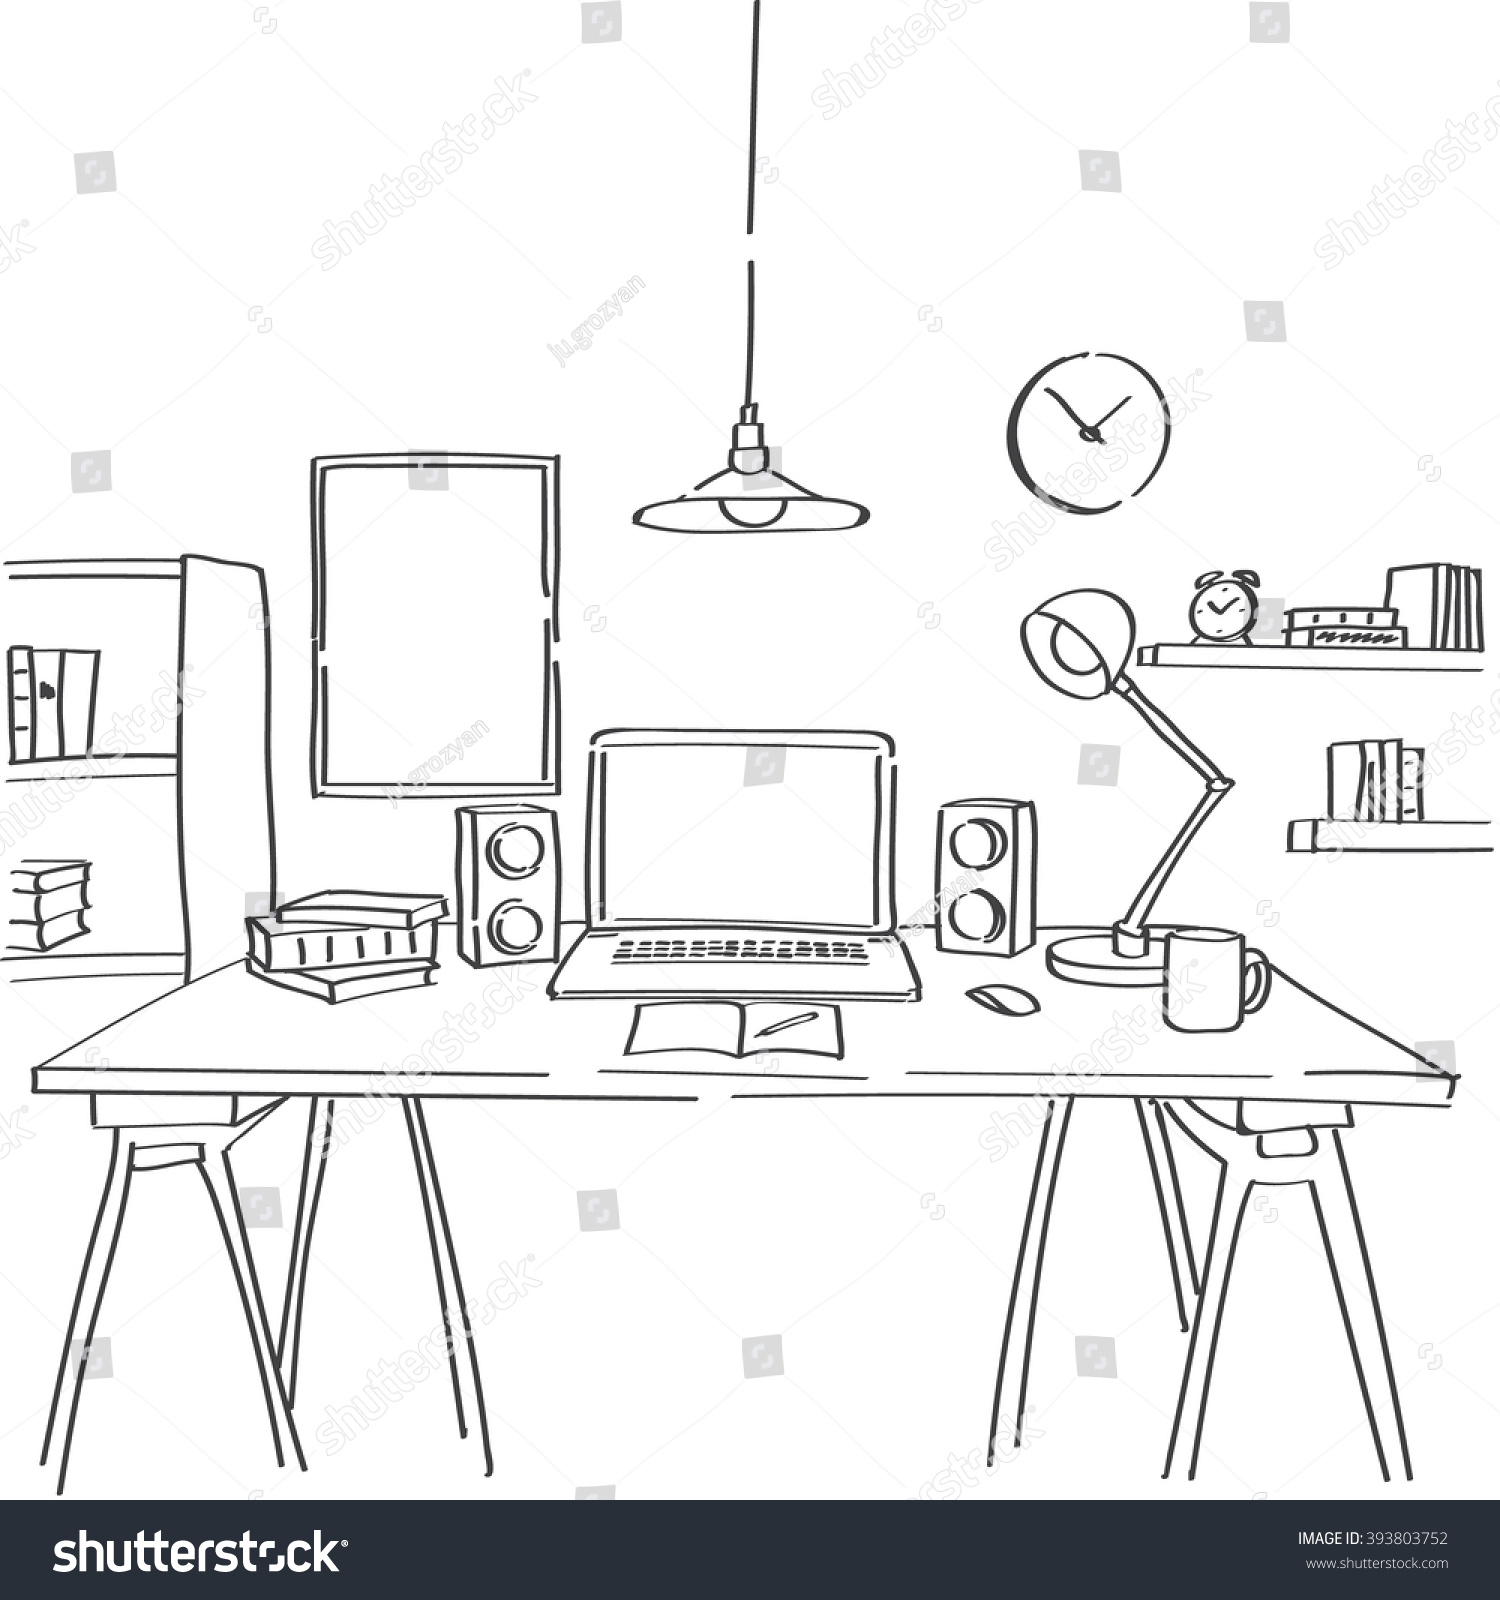 Table lamp for drawing - Hand Drawn Sketch Of Modern Workspace With Work Table Lamp Clock And Picture On